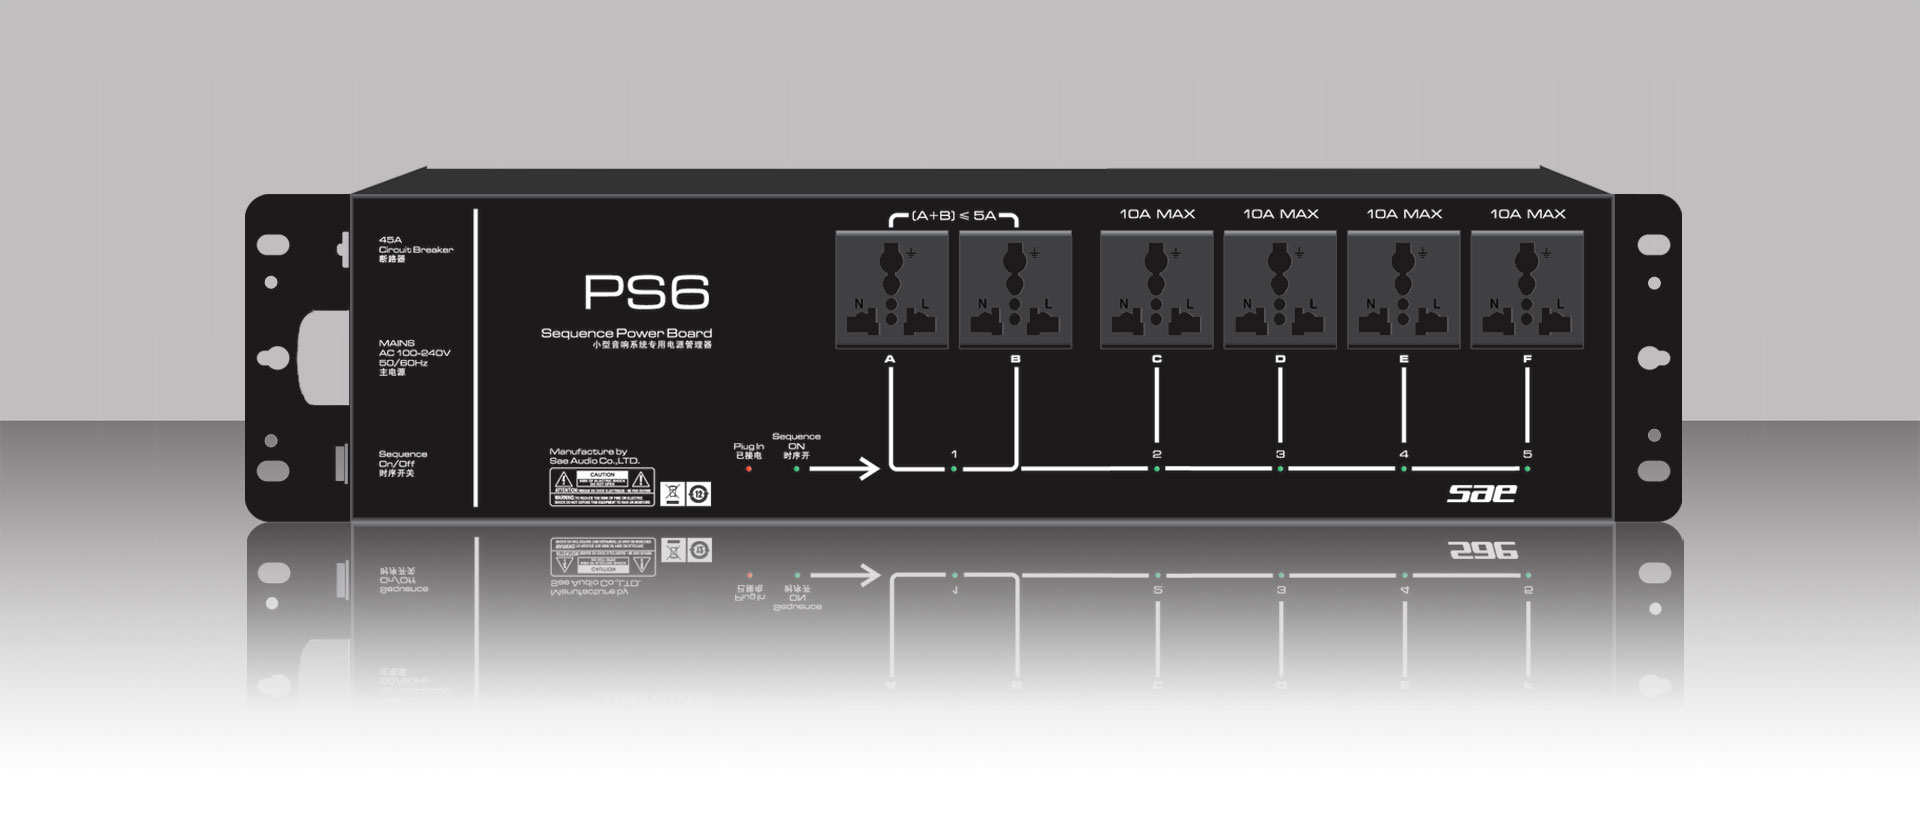 Ps F on Ma Audio Amplifier